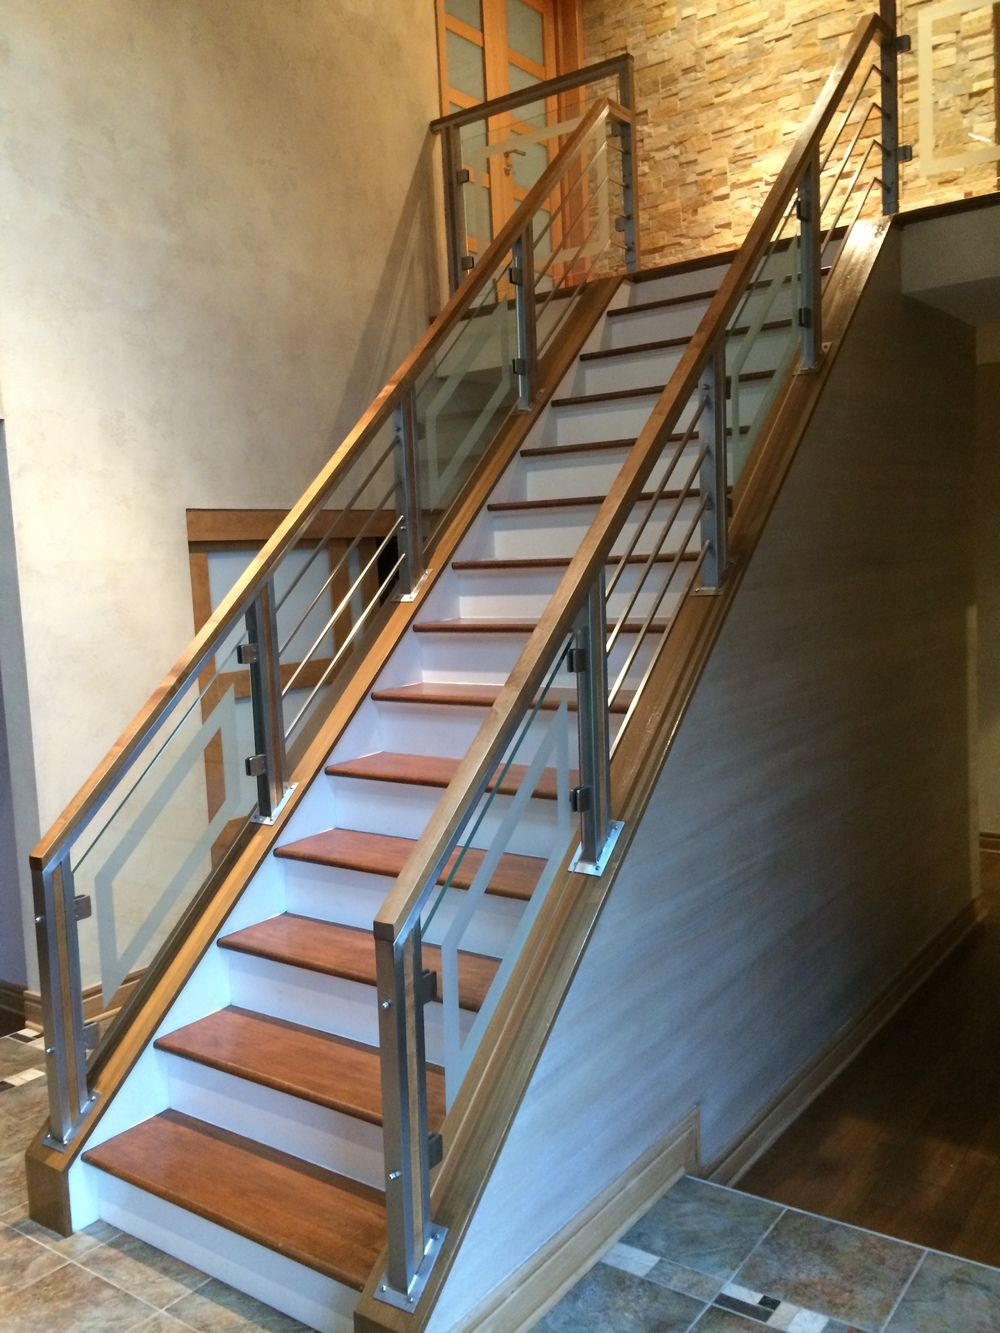 Stainless steel horizontal rods and glass railing with ...